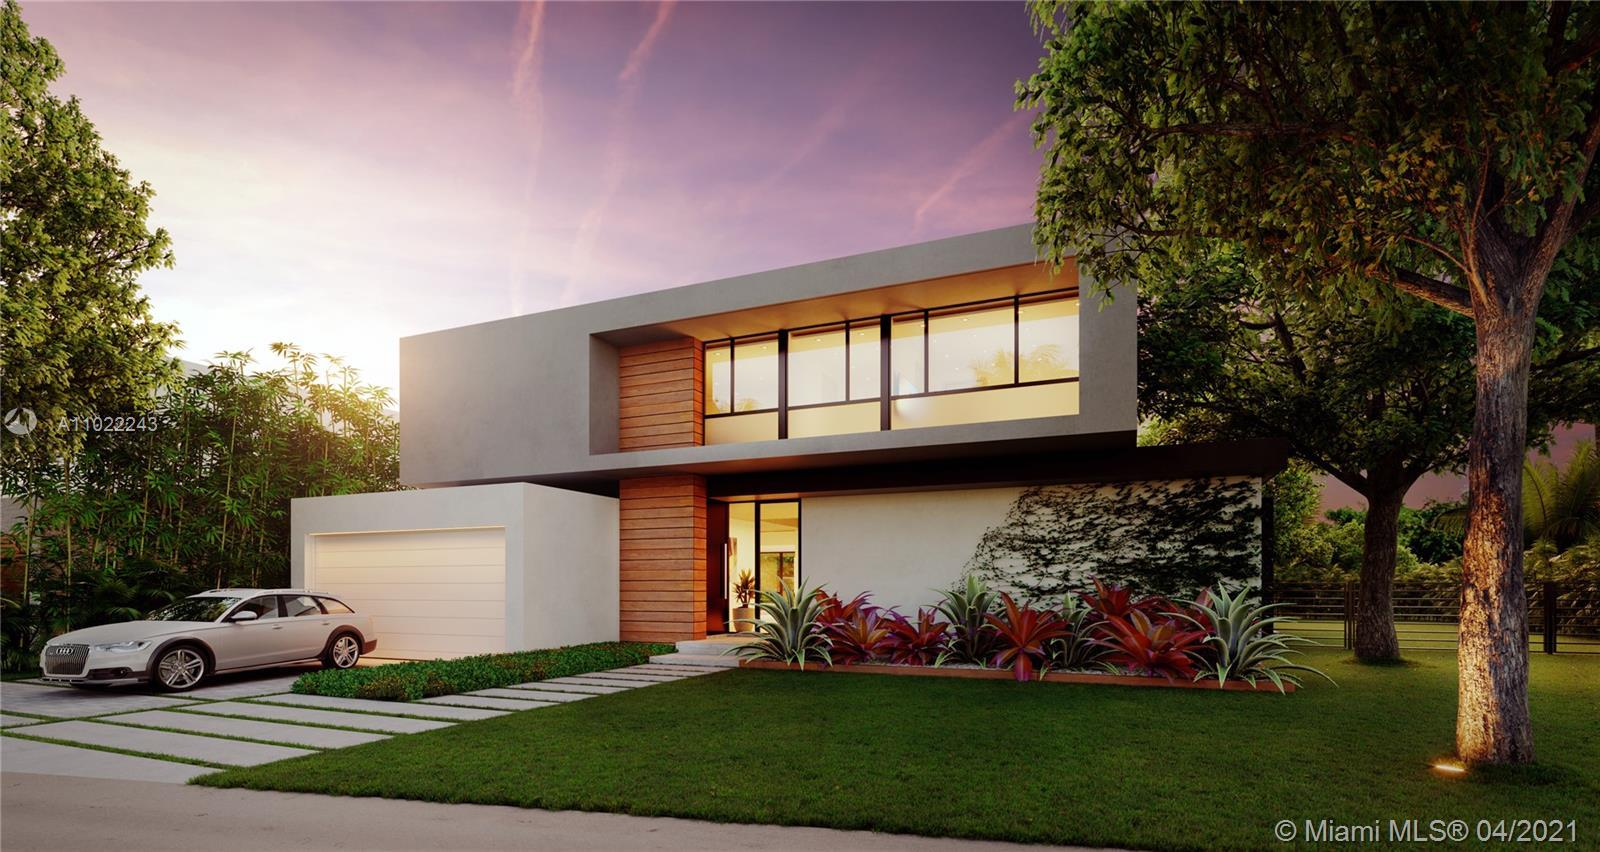 PRE CONSTRUCTION Riverland luxury homes in Fort Lauderdale, Florida each home is custom designed to